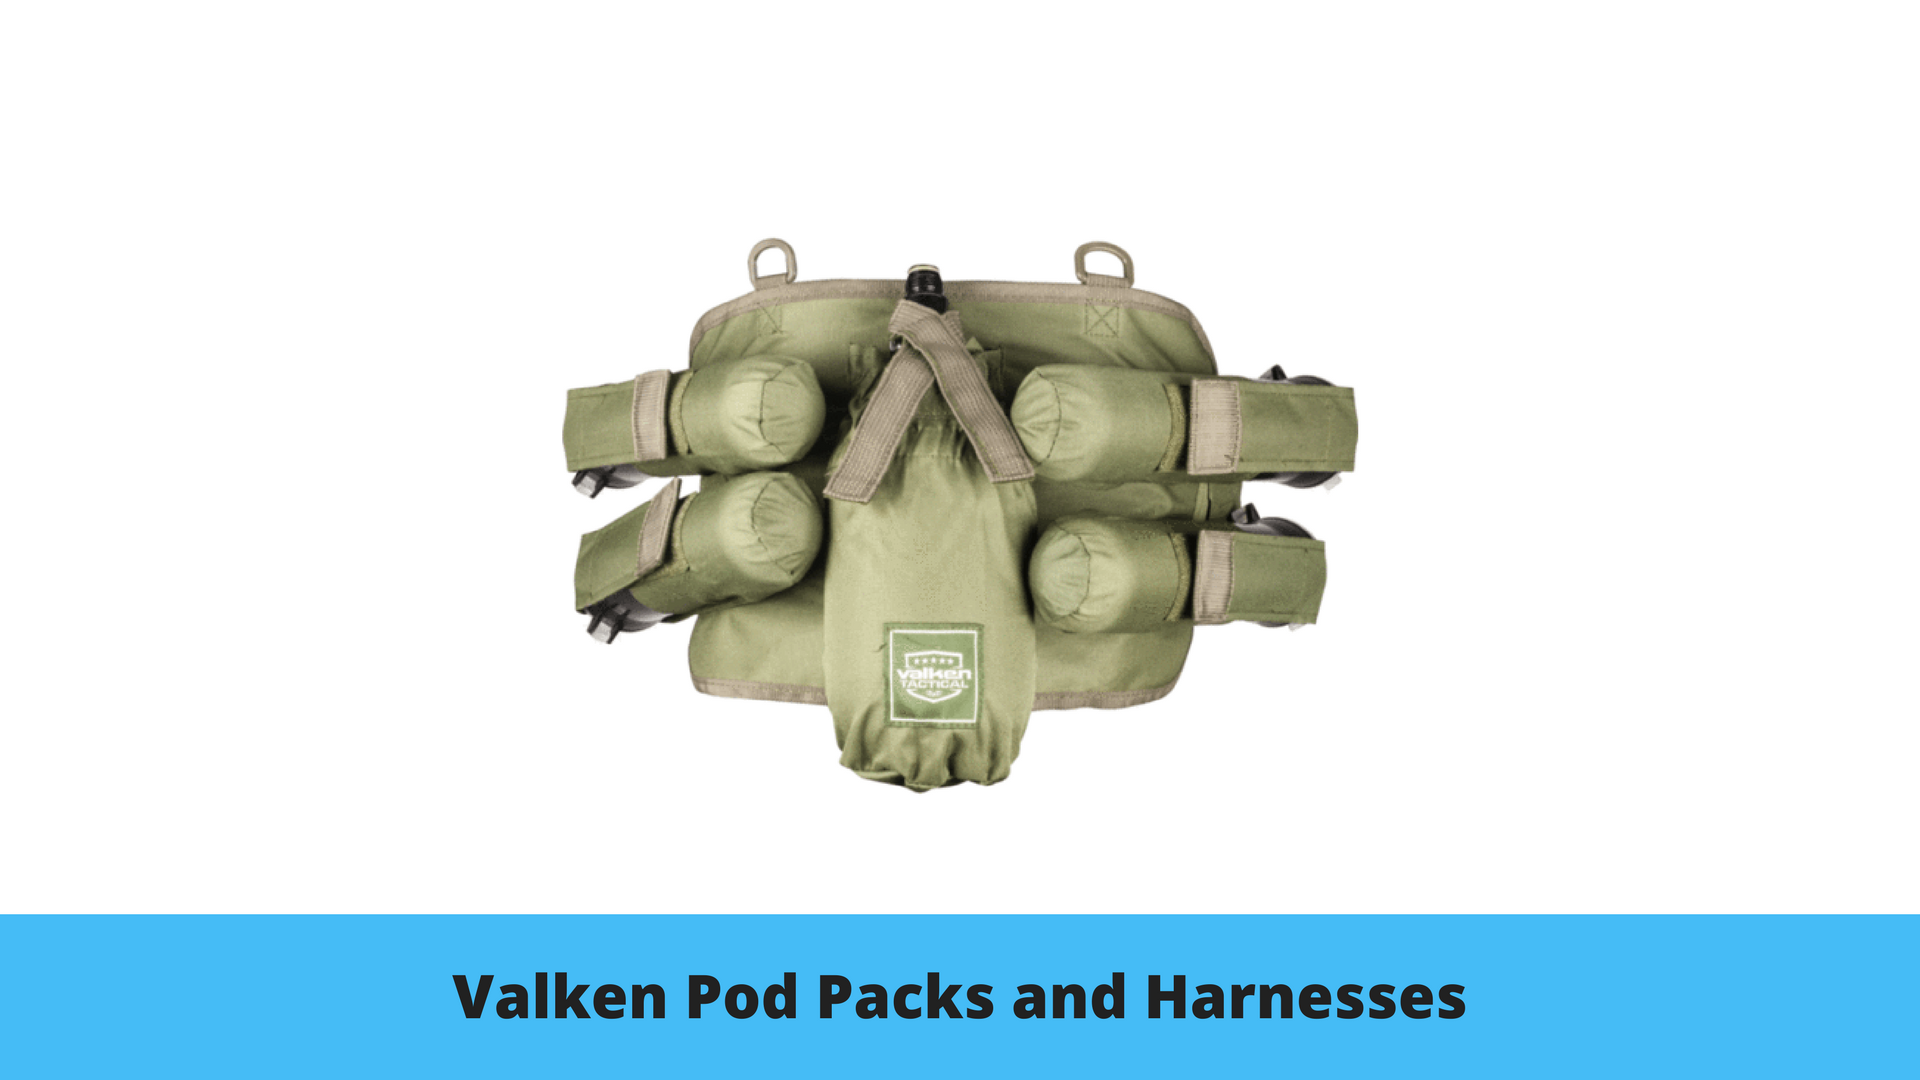 Valken Pod Packs and Harnesses